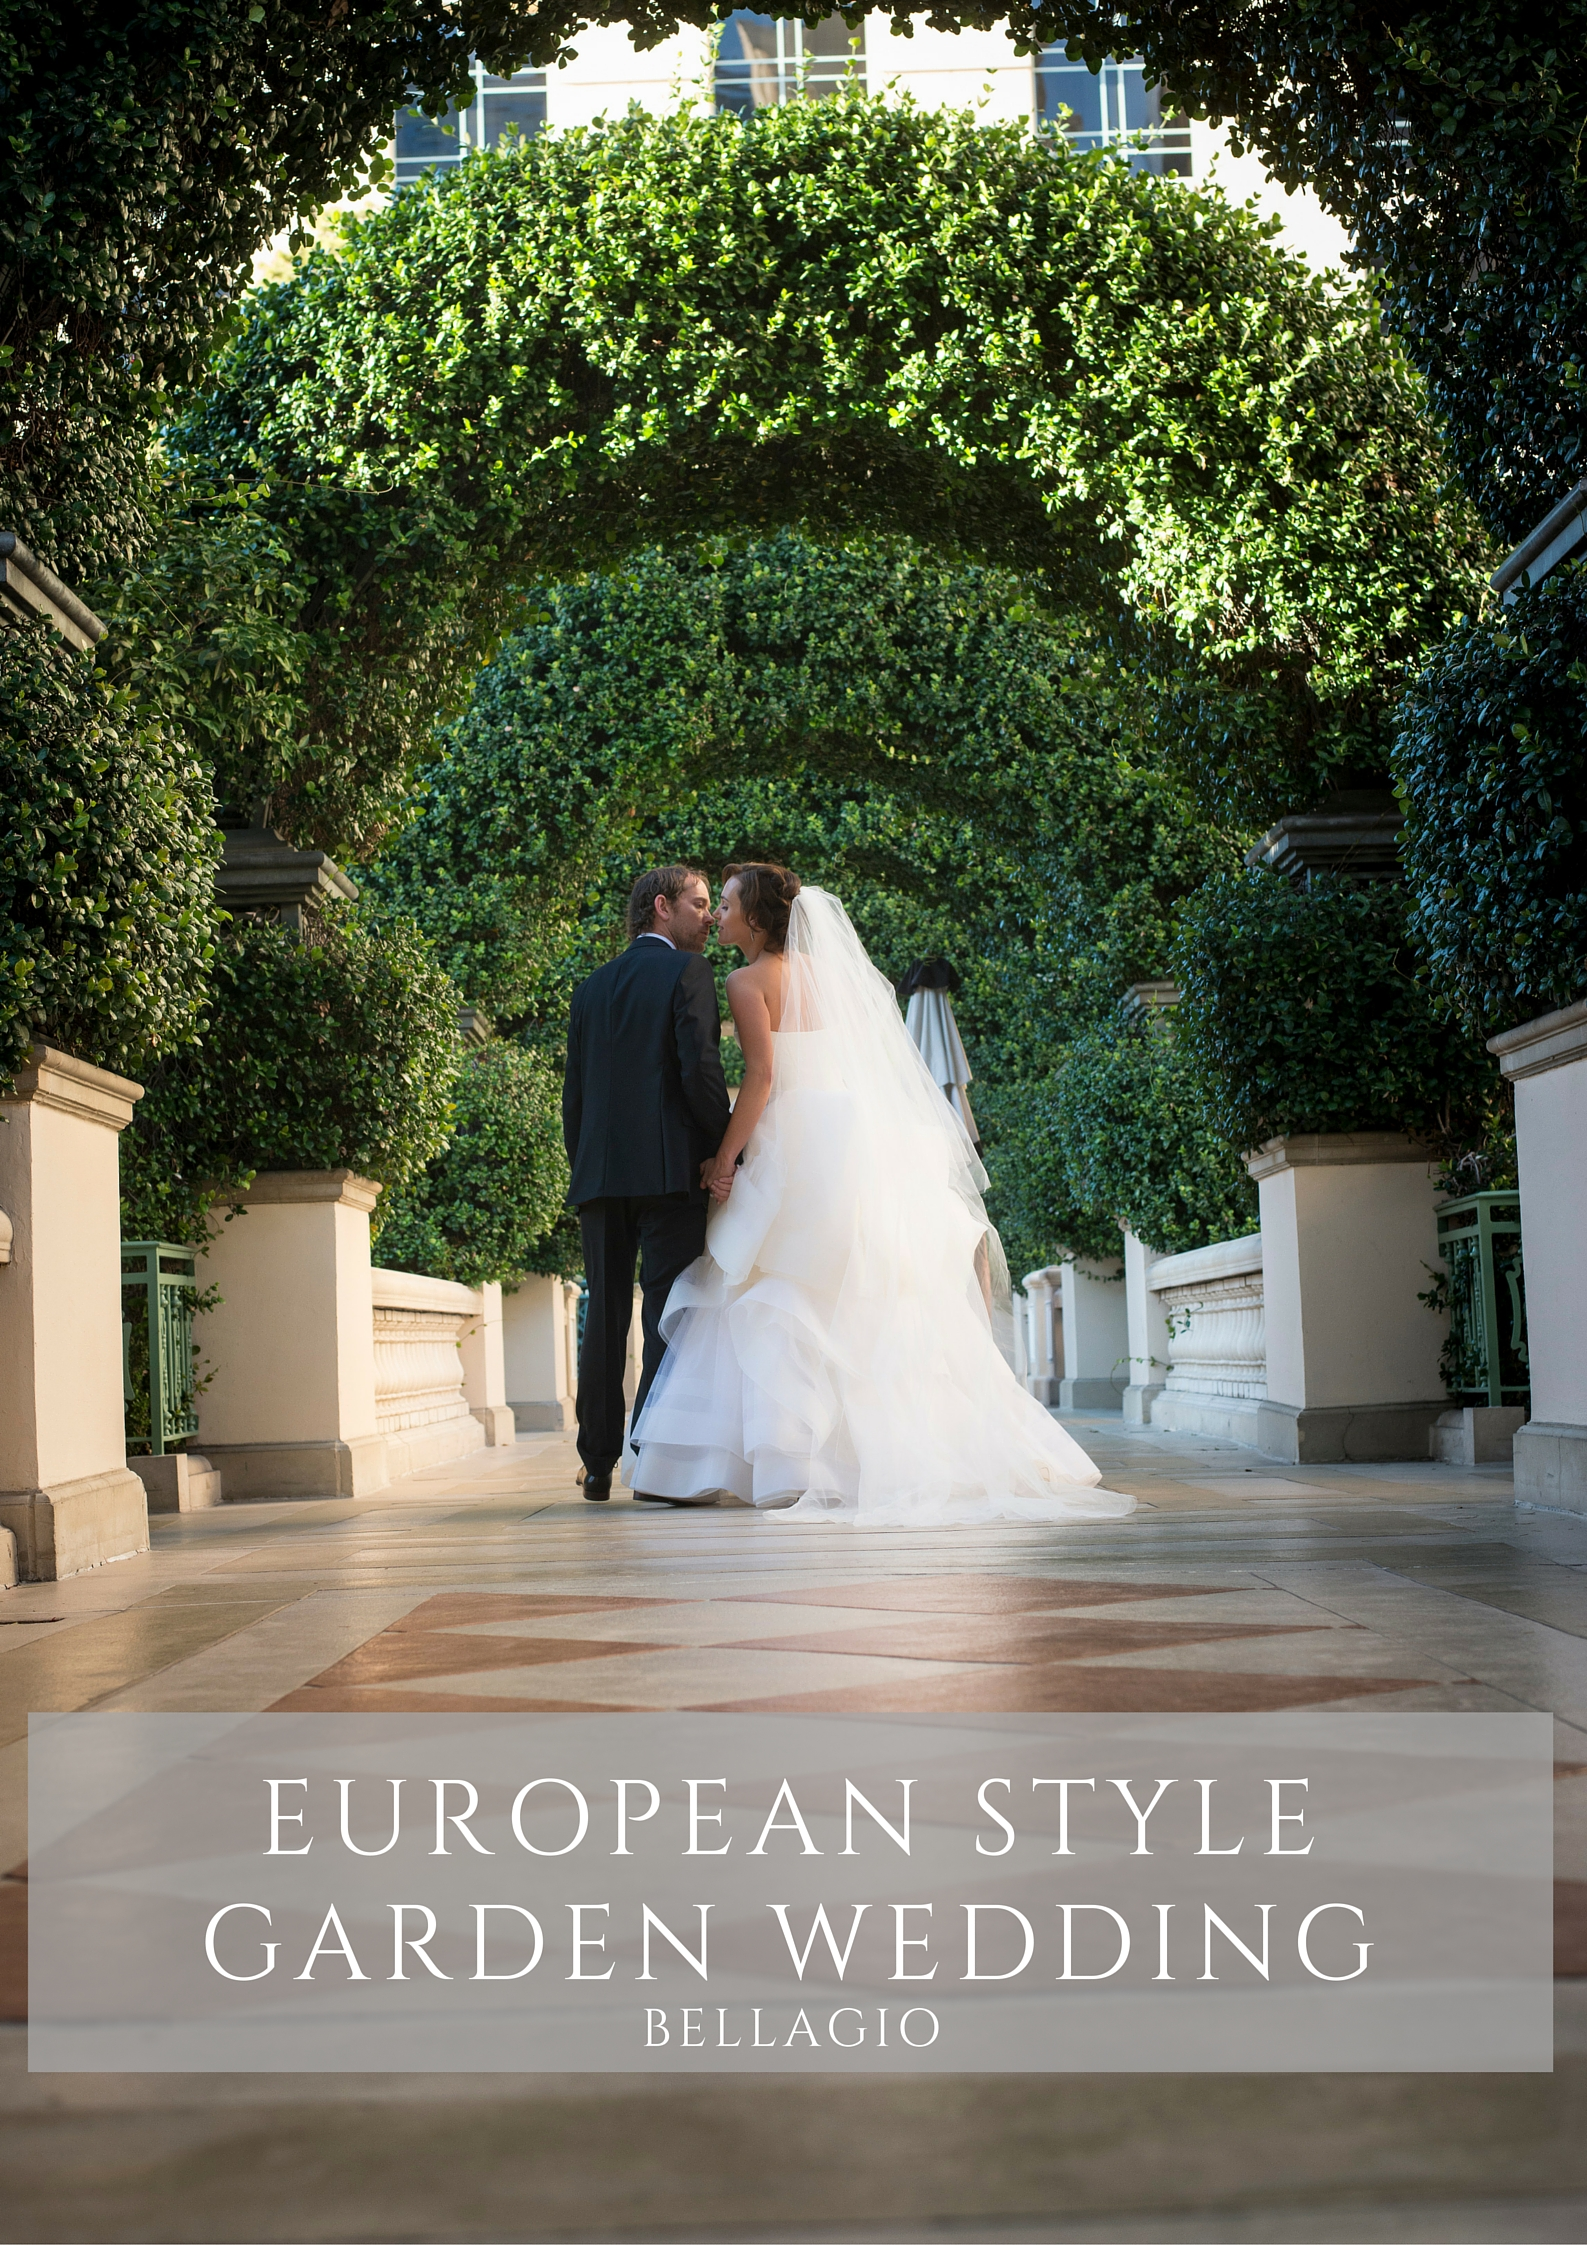 Featured on Brides.com & Carats and Cake:   The bride is a thoroughly modern woman from Australia with a sharp wit and bold fashion sense. The groom carries himself with the chivalry of another time, and traveled across the world from Ireland for the woman he loves. Together, they wanted a wedding that showcased their love of Europe in a setting that was both iconic and playful. I love everything about this flawless affair!   Wedding at    The Bellagio    | Las Vegas Wedding Planner    Andrea Eppolito    | Floral and Decor by    Naakiti Floral    | Photography by    Alt F    | Video by    Something New Cinema    | Wedding Dress by    Vera Wang    | Rentals and Decor by    Sit on This Inc.